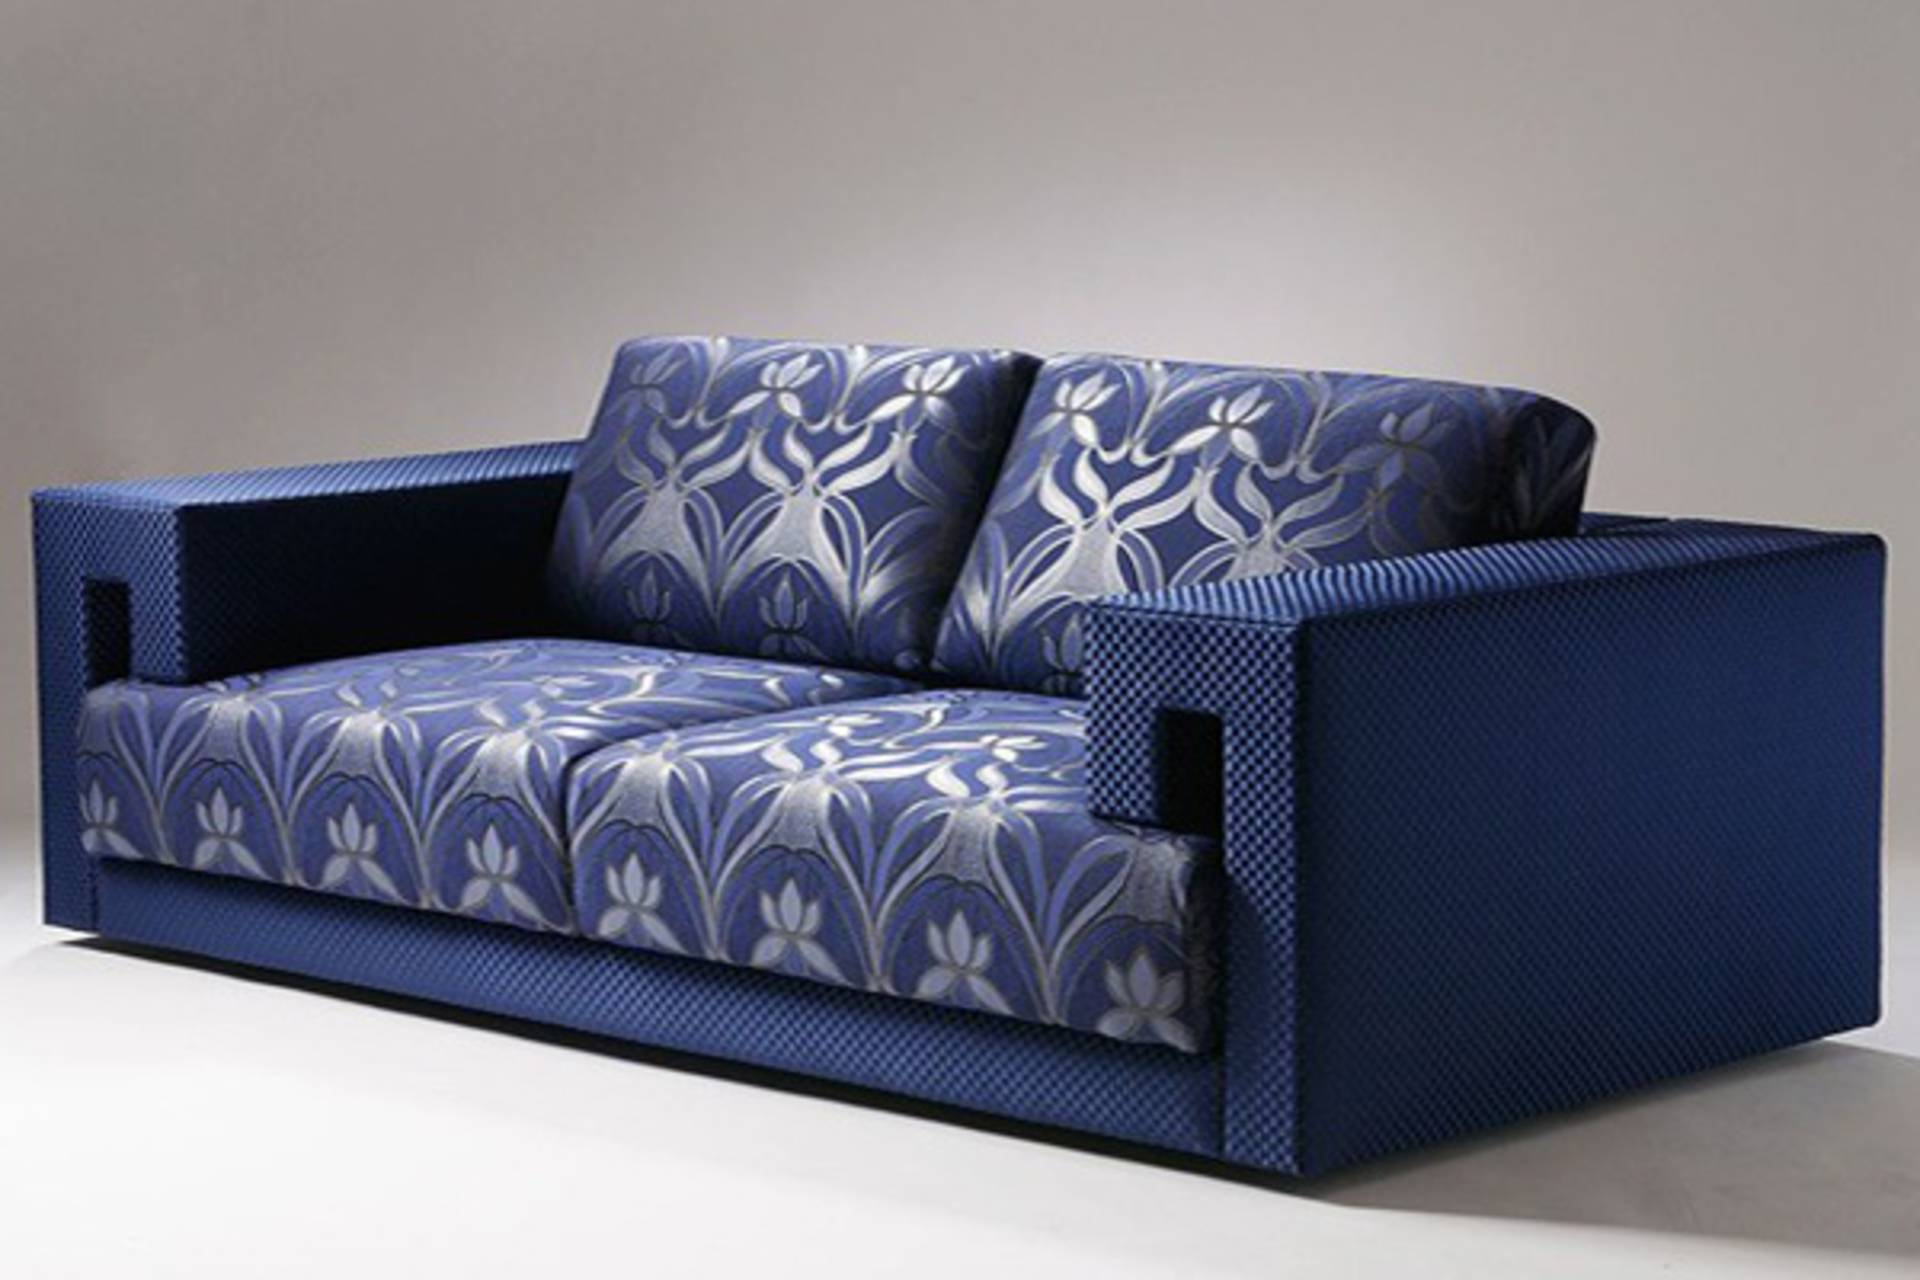 Versace Sofa Collection For Your Living Room Home Reviews